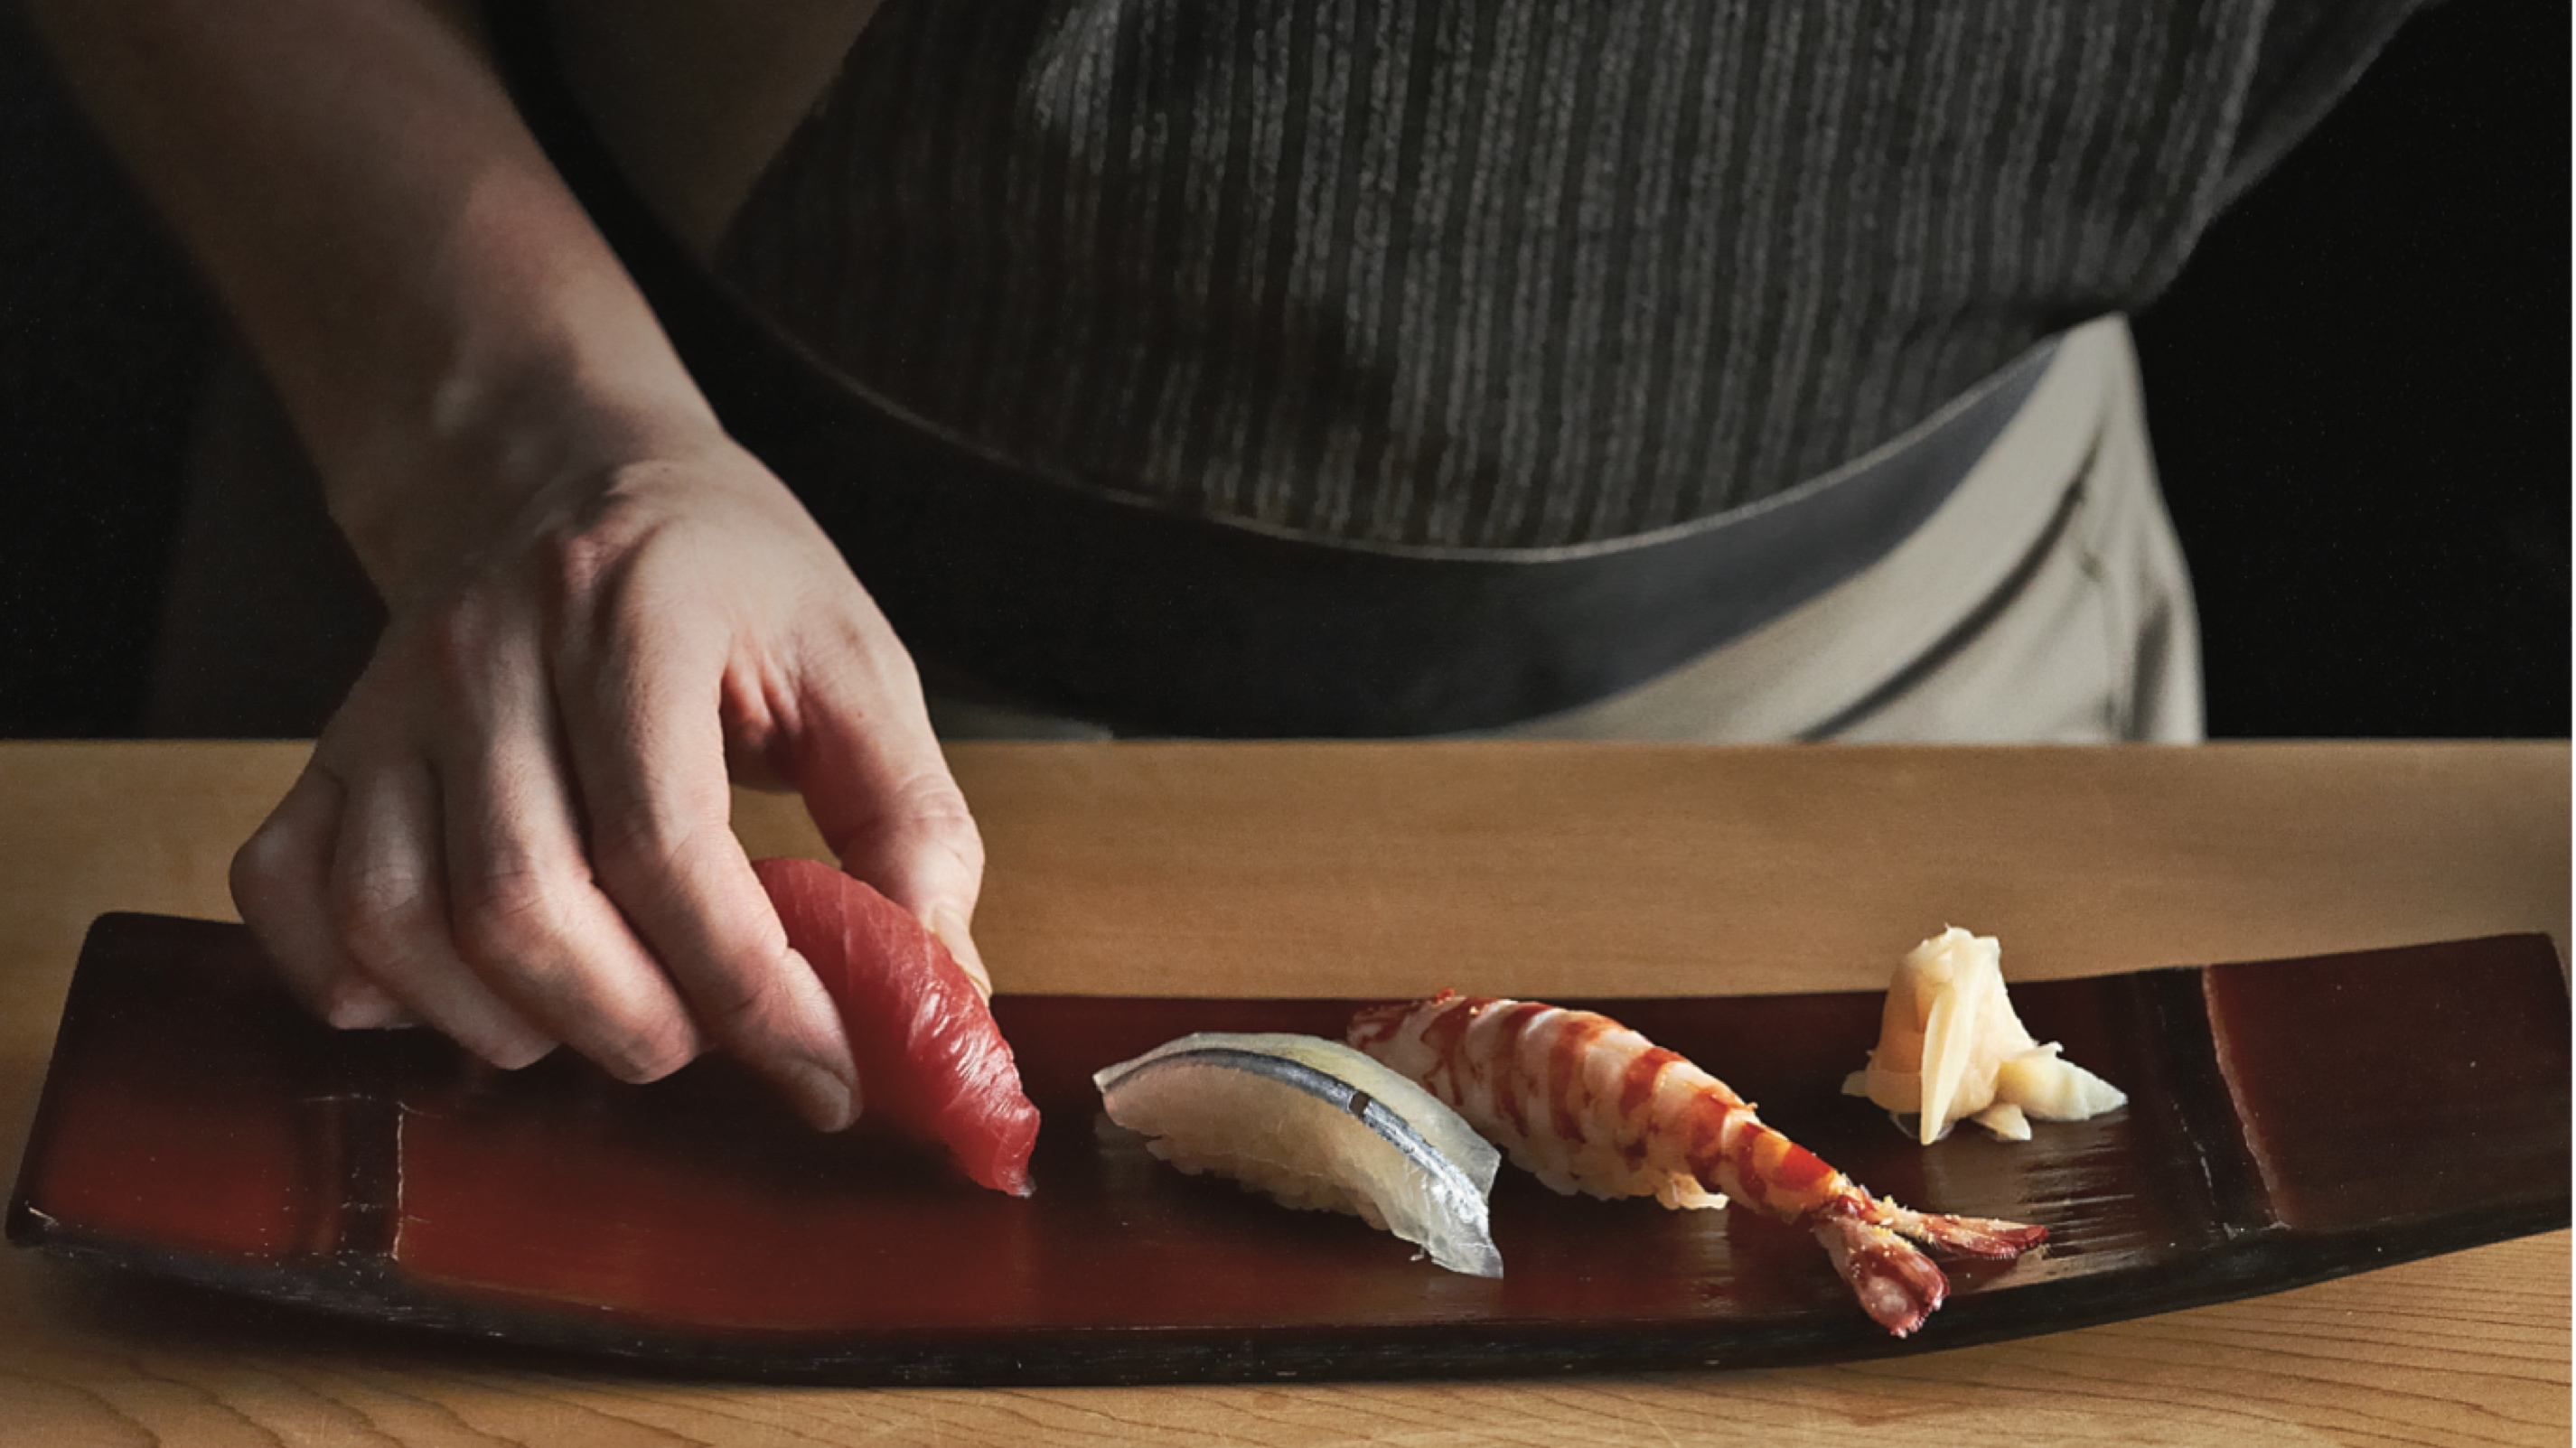 Chef of Sushi SORA Yuji Imaizumi delicately prepared nigiri sushi for diners